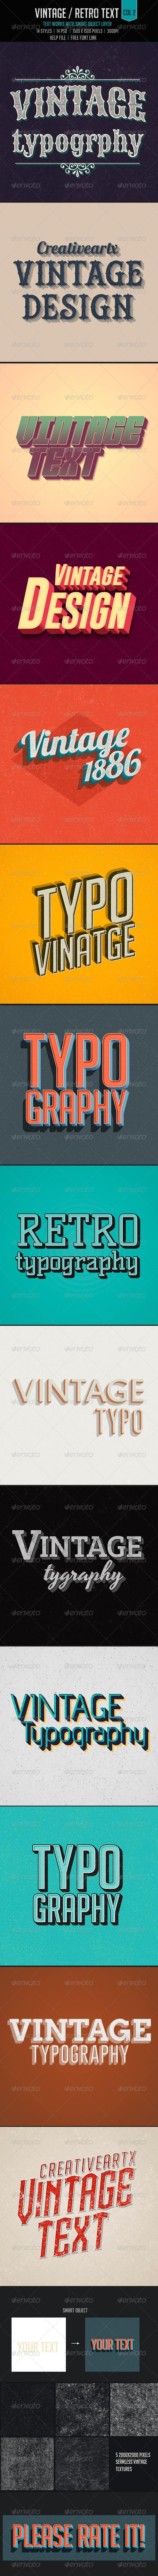 Vintage Retro Typo Photoshop Style